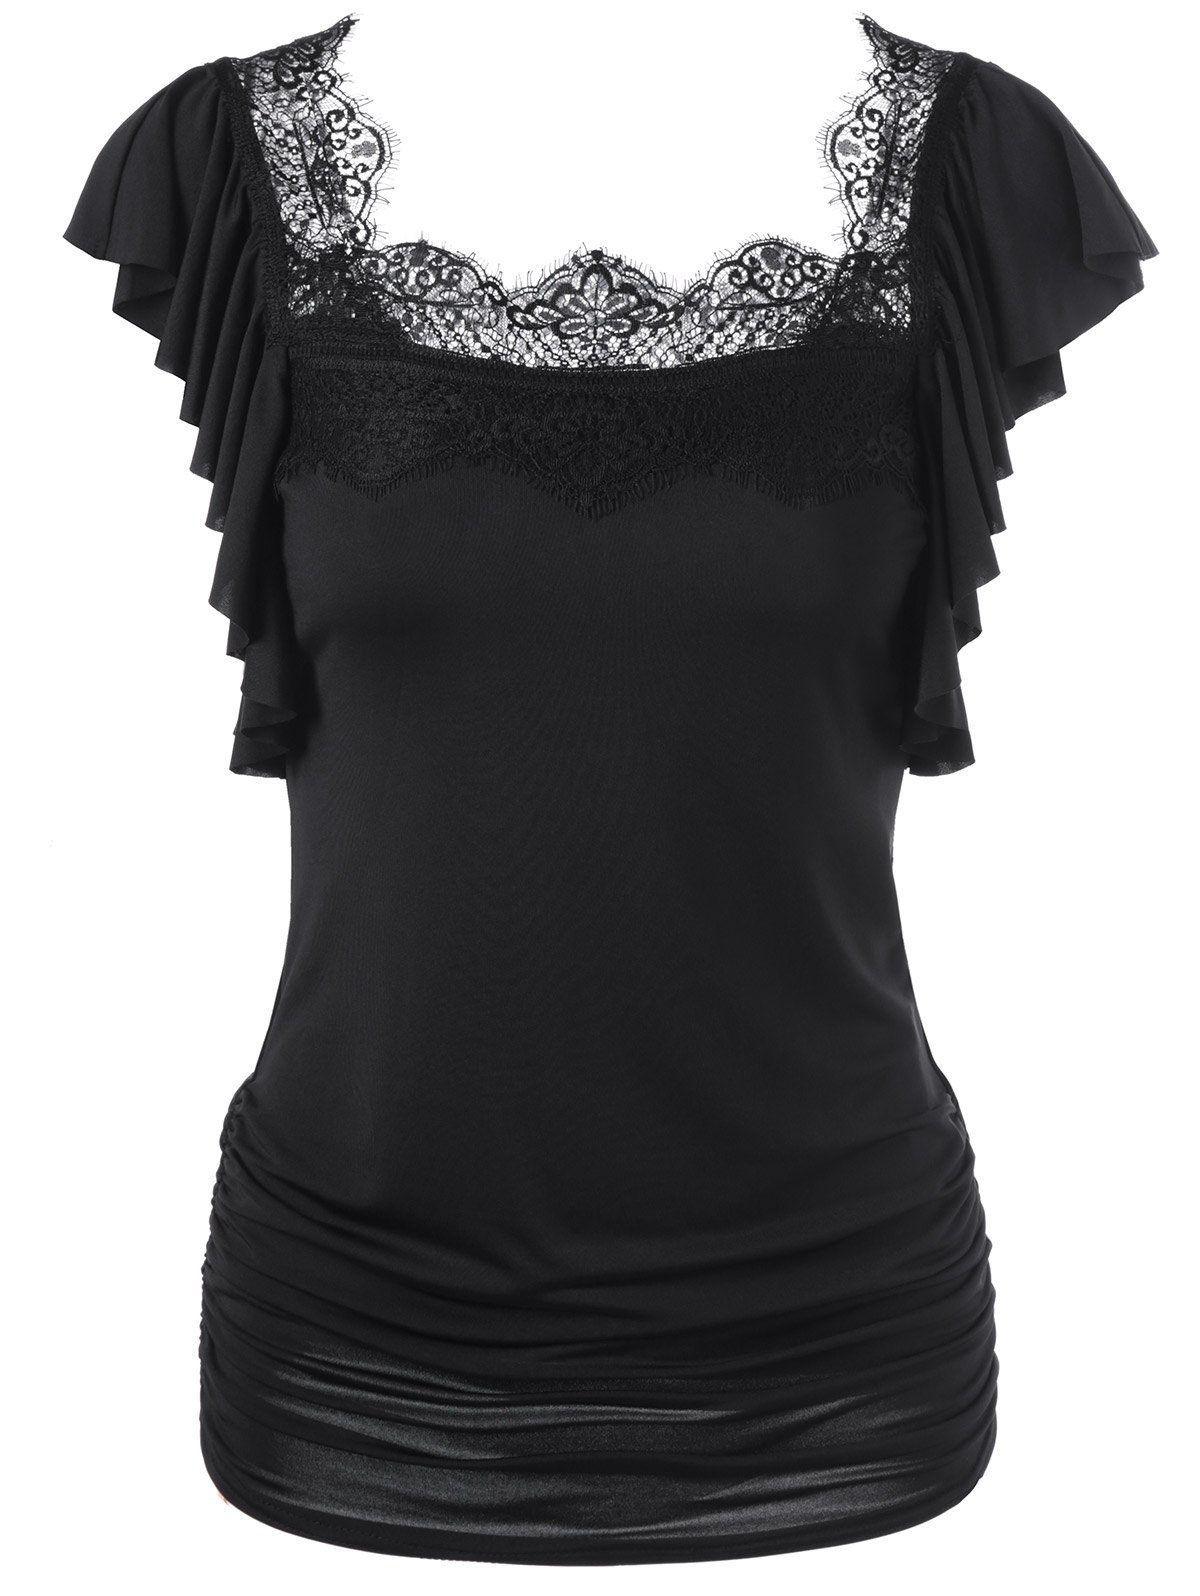 Black t shirt with lace - Butterfly Sleeve Lace Trim Ruched T Shirt Black M